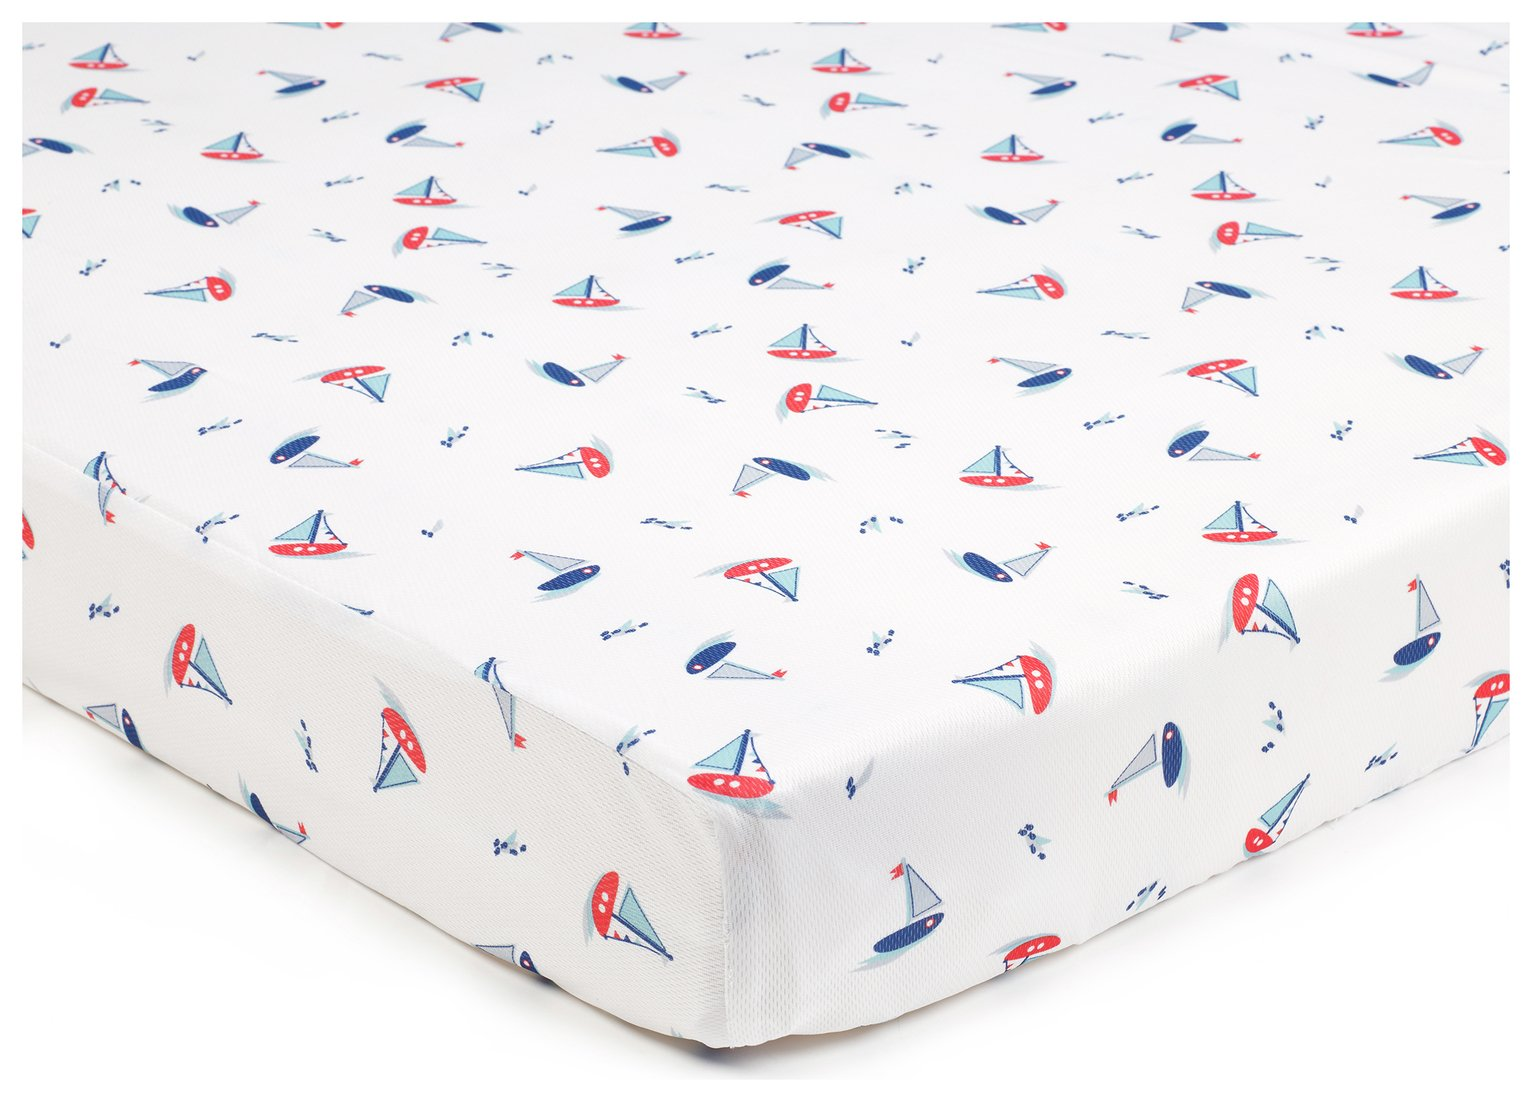 BreathableBaby 2 Cot Sheets - By The Sea